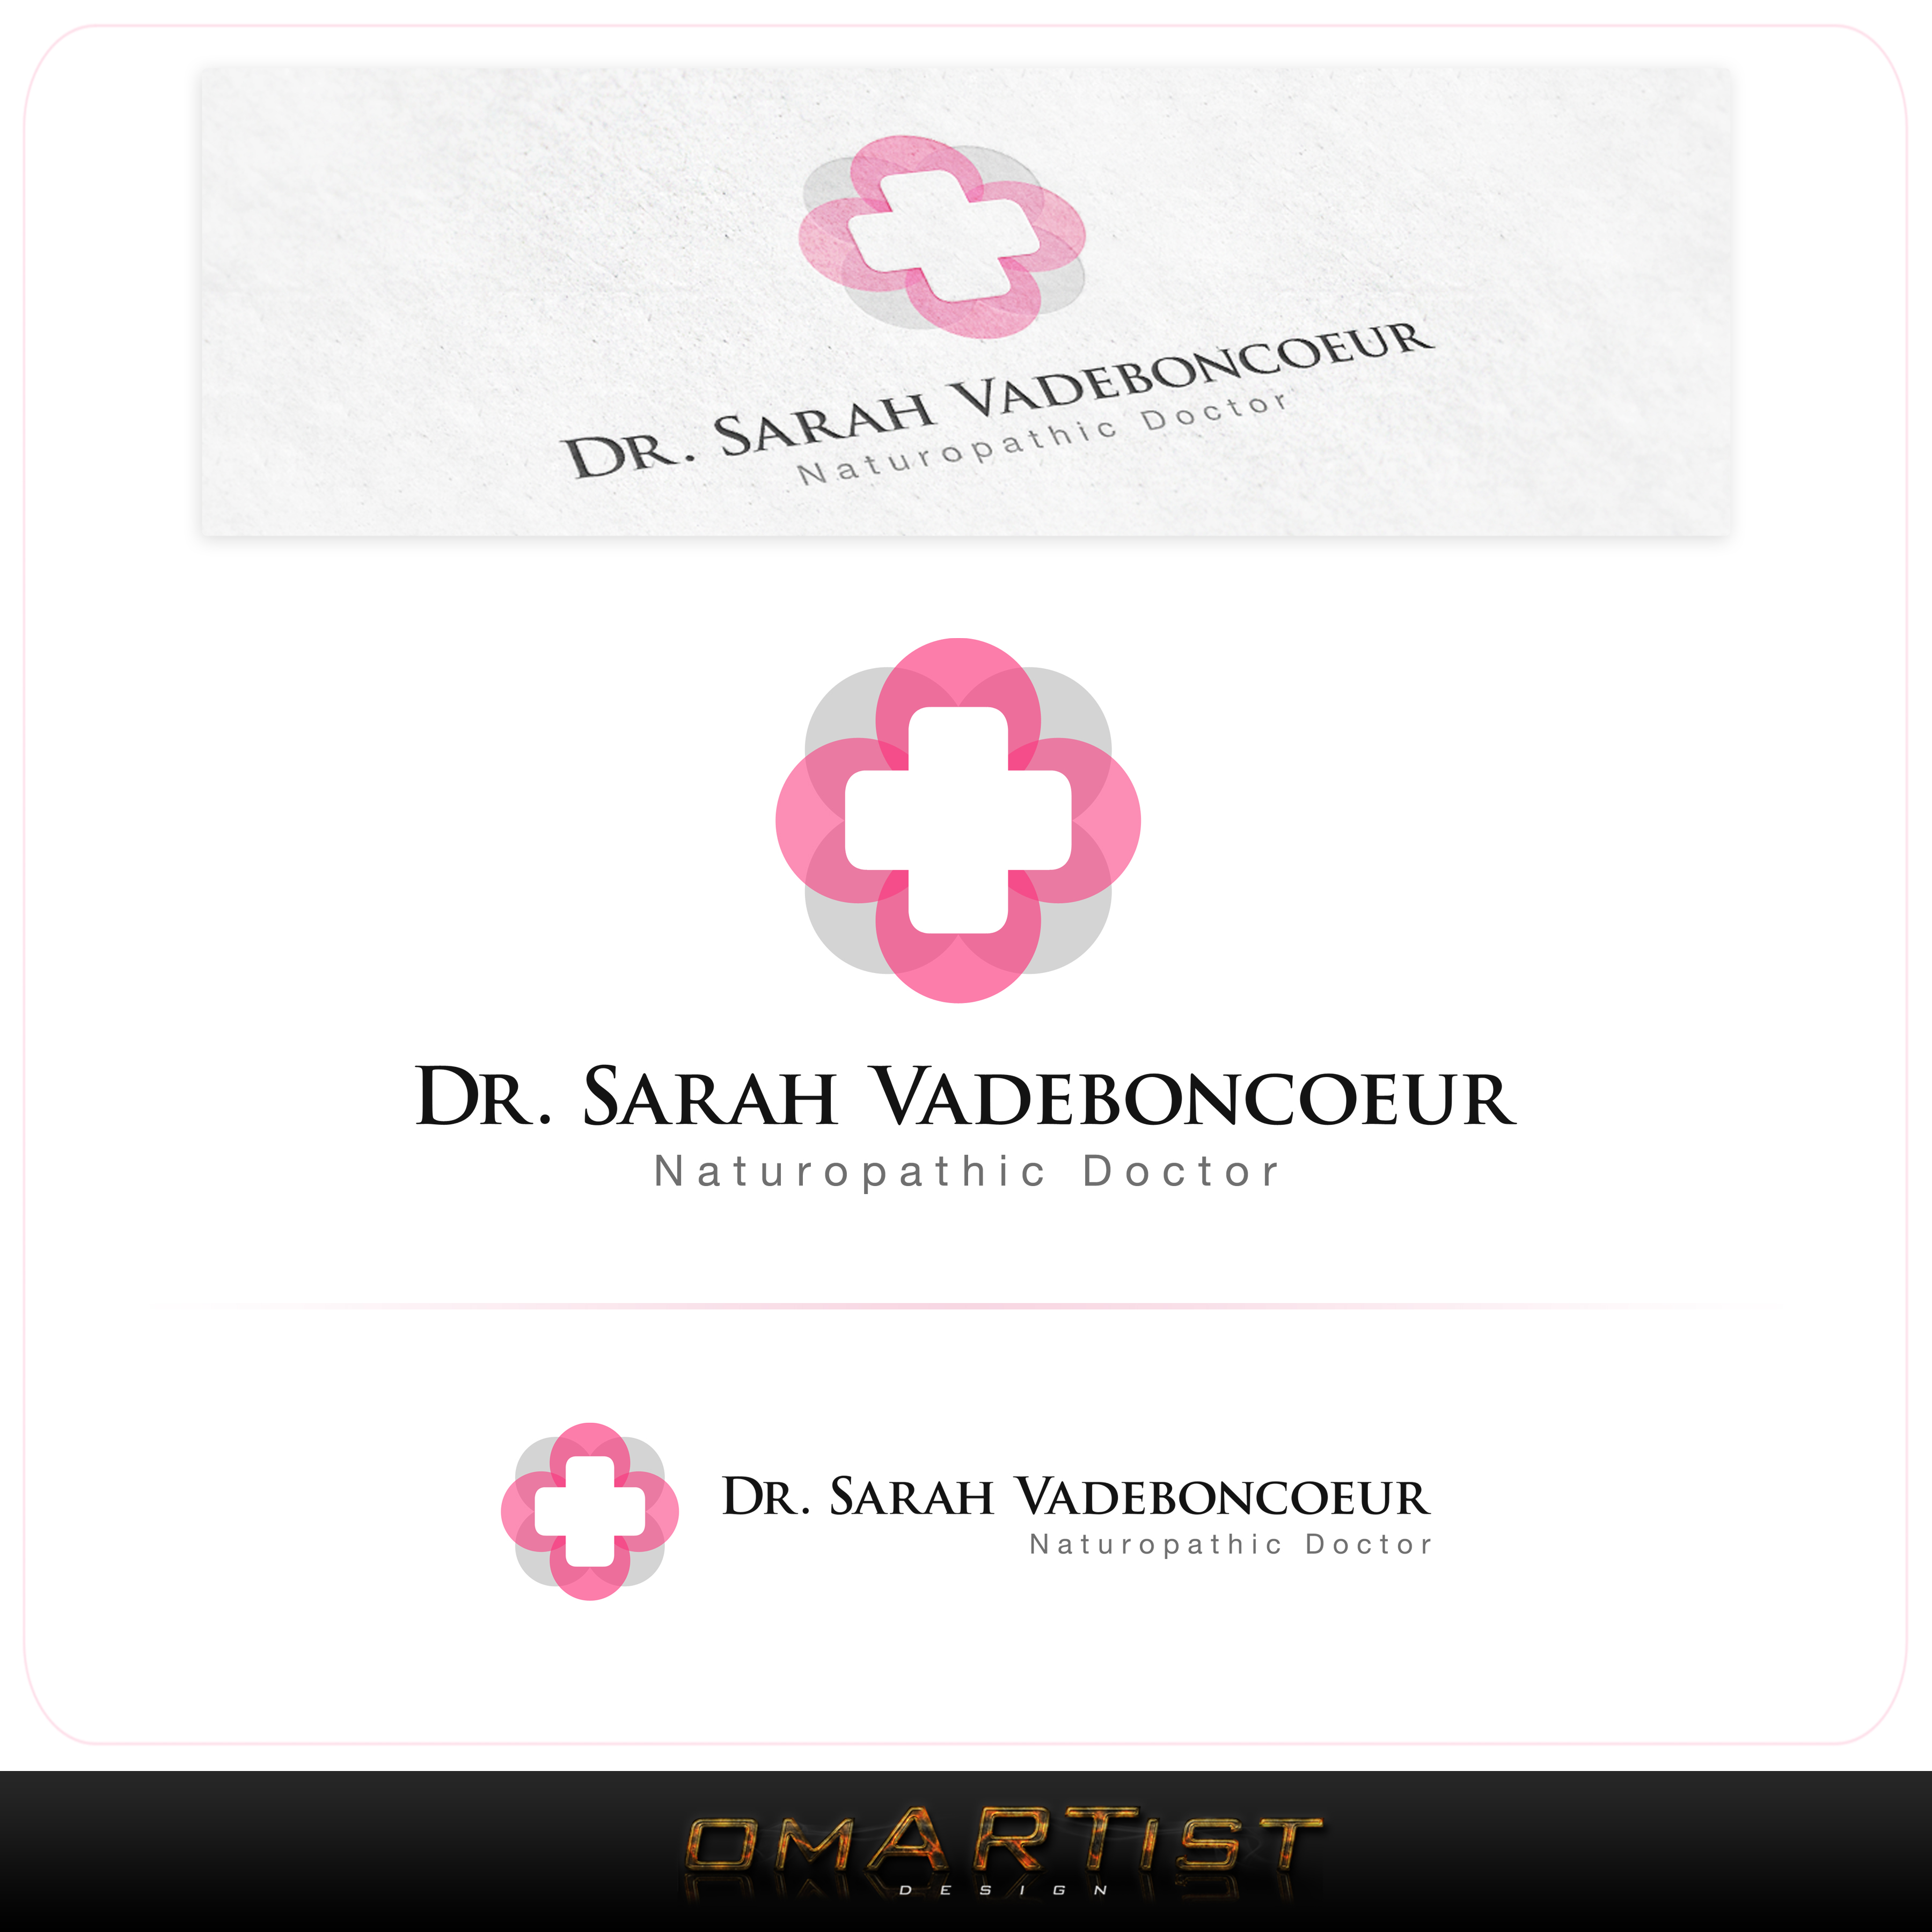 Logo Design by omARTist - Entry No. 117 in the Logo Design Contest New Logo Design for Dr. Sarah Vadeboncoeur, Naturopathic Doctor.